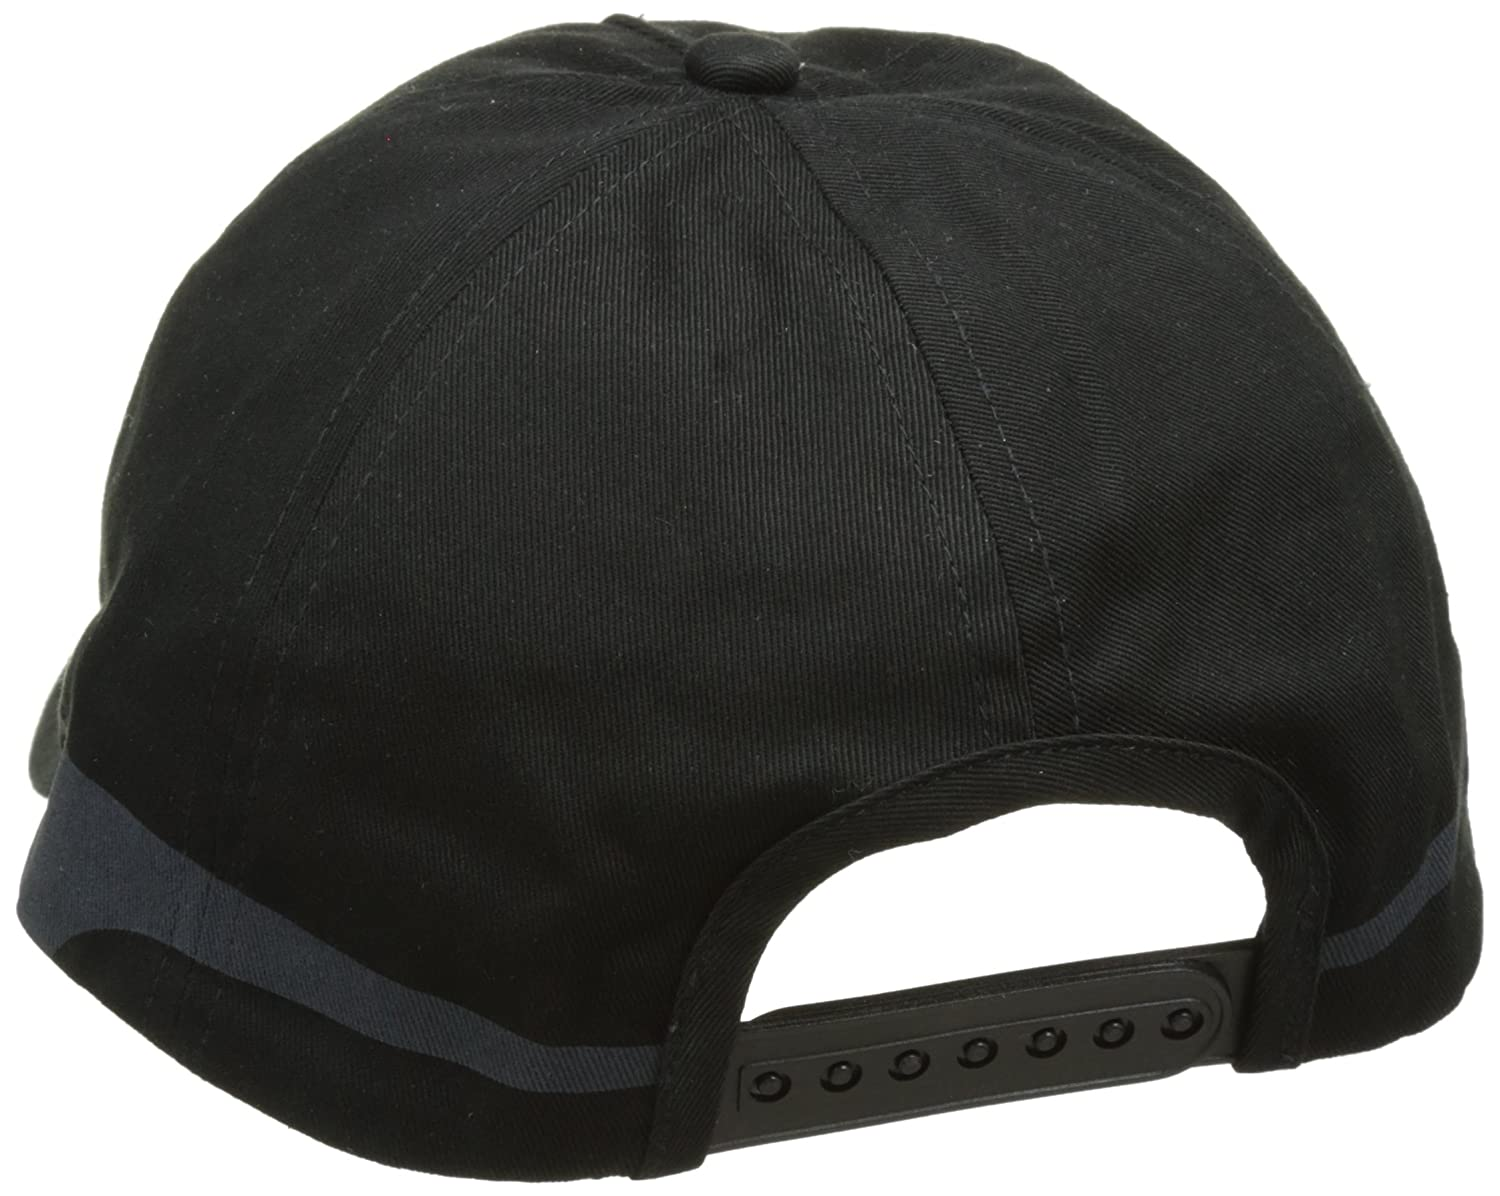 Amazon.com: PUMA New 2018 Model Mens Cap (Black, one Size): Sports & Outdoors